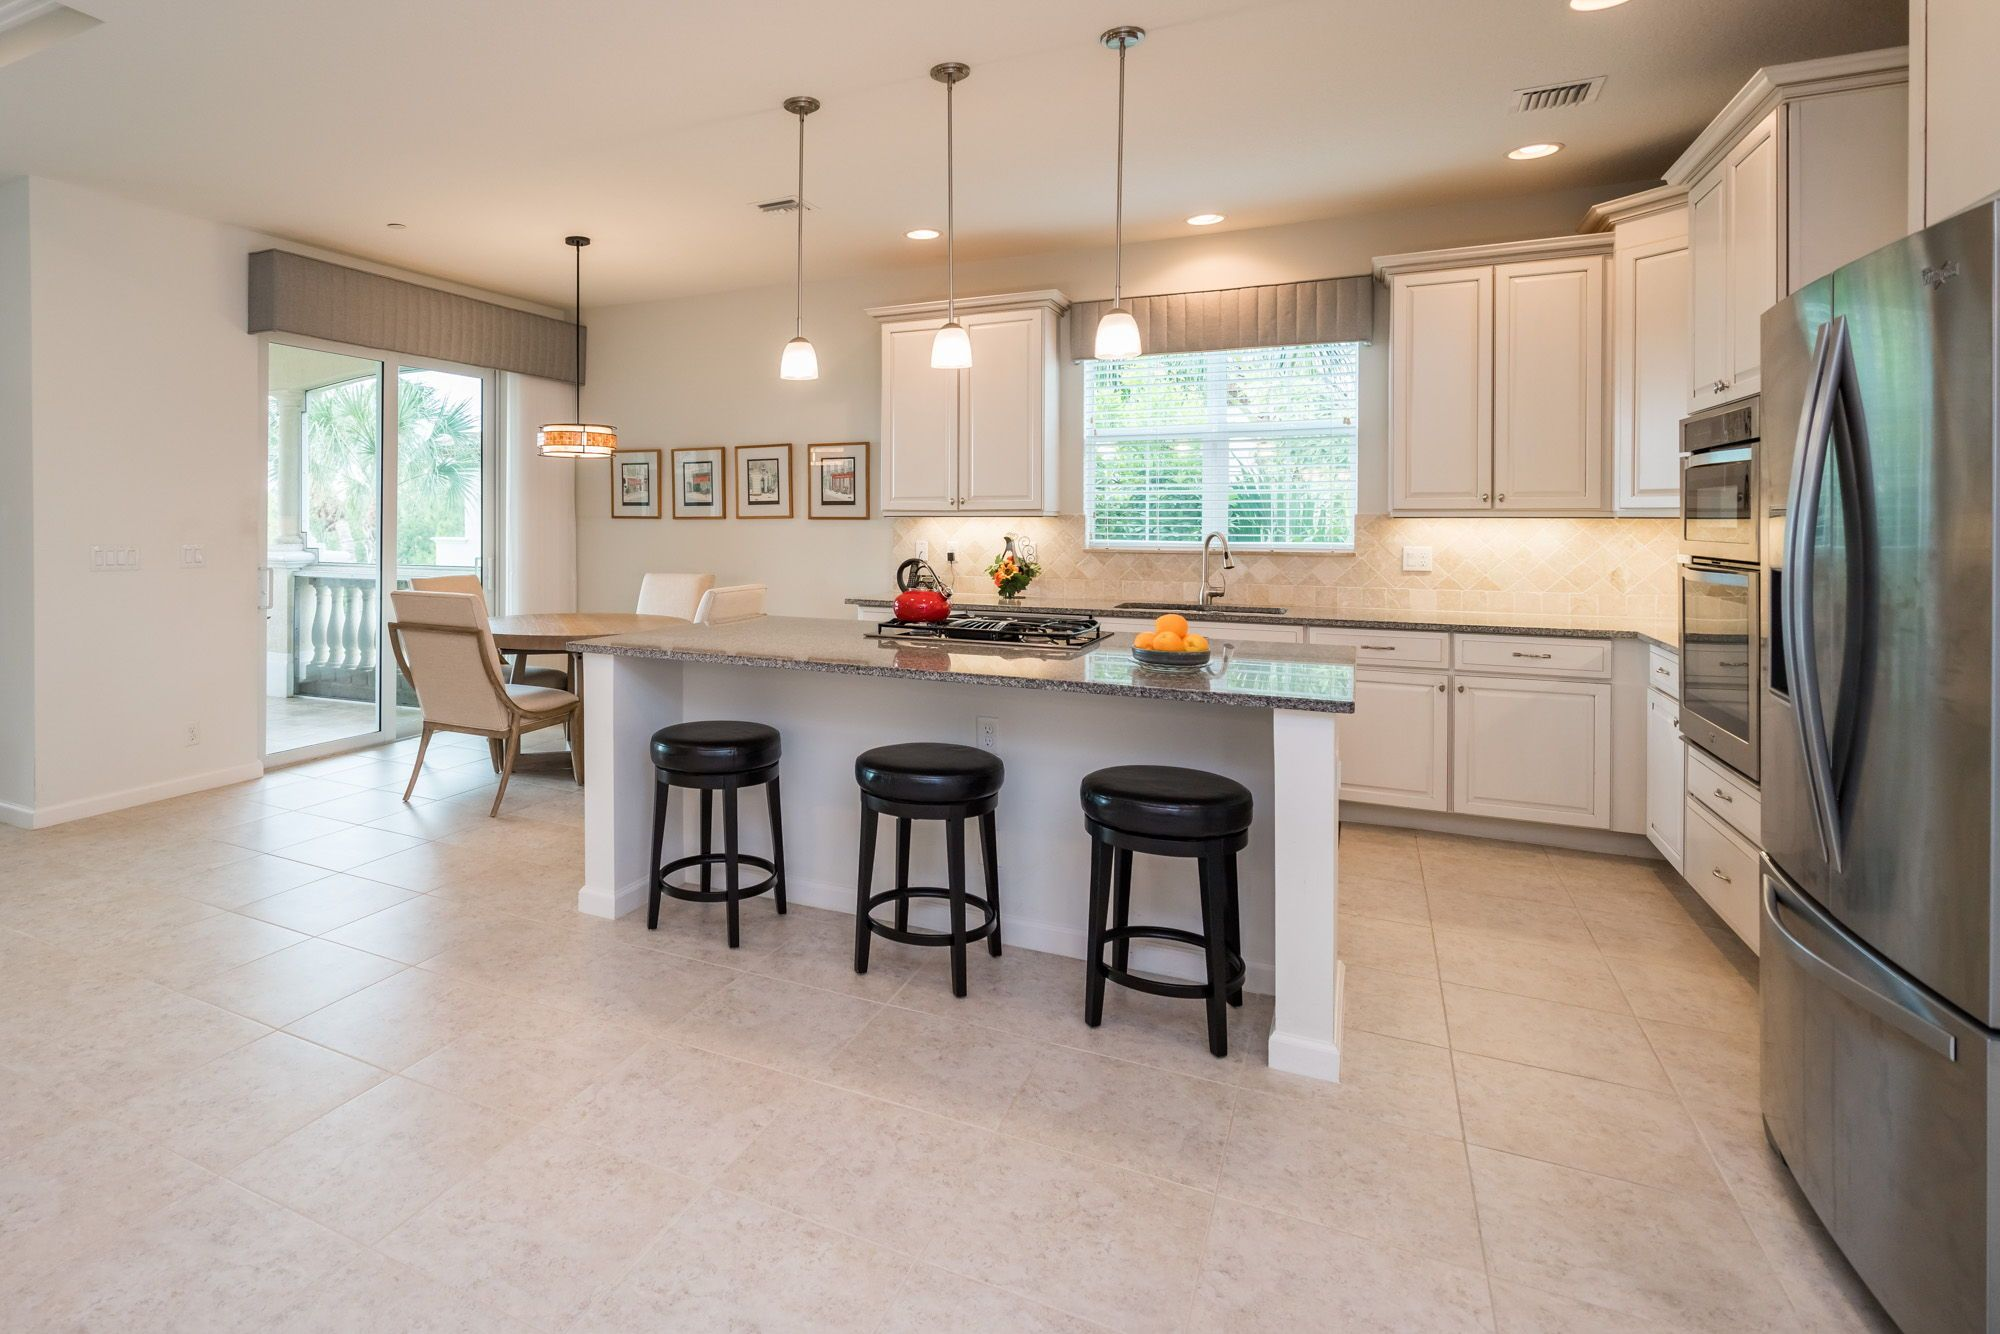 The Kitchen Has Tile Flooring Stainless Steel Appliances A Large Island With Granite Countertops 42 Kitchen Decor Cabinets With Crown Molding Kitchen Design